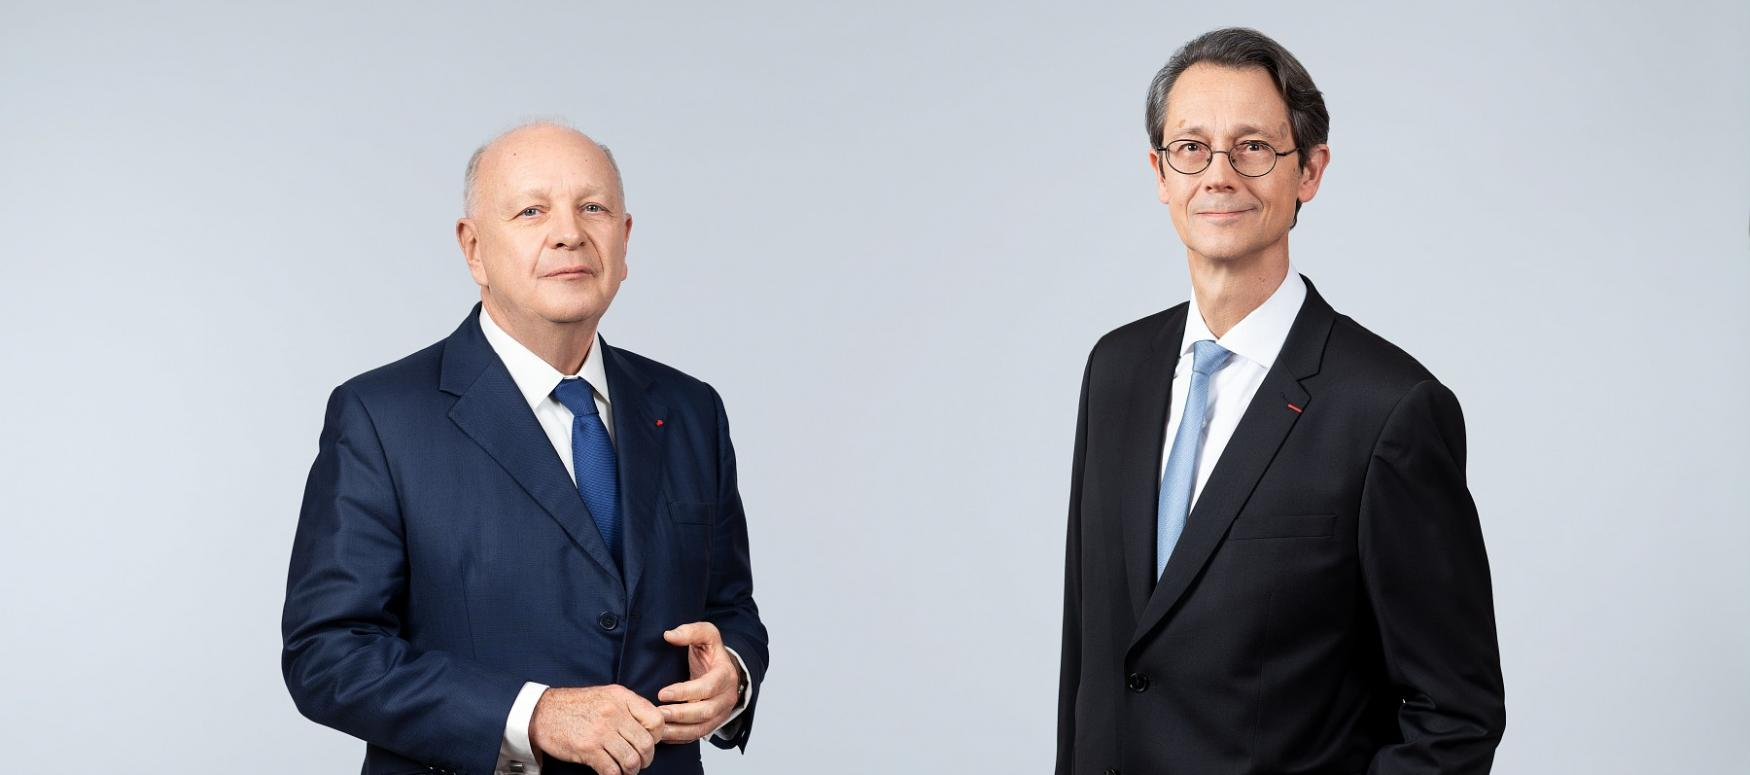 Ross McInnes, Chairman of the Board and Olivier Andriès, Chief Executive Officer of Safran